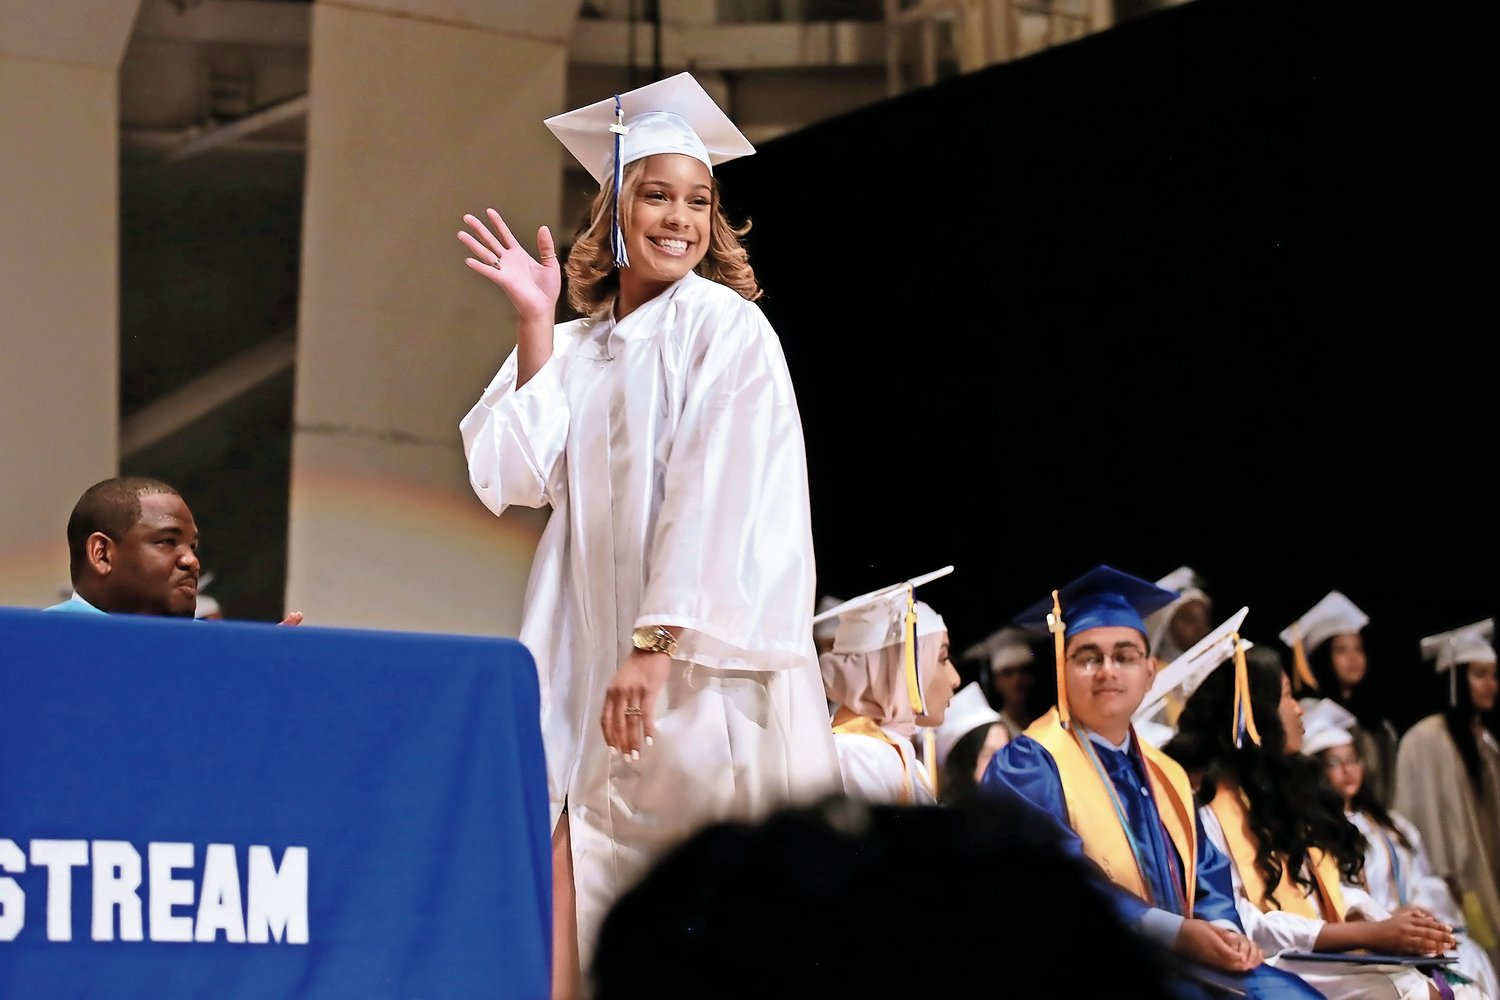 Valerie Ruiz smiled and waved as she walked across the stage of the Tilles Center.